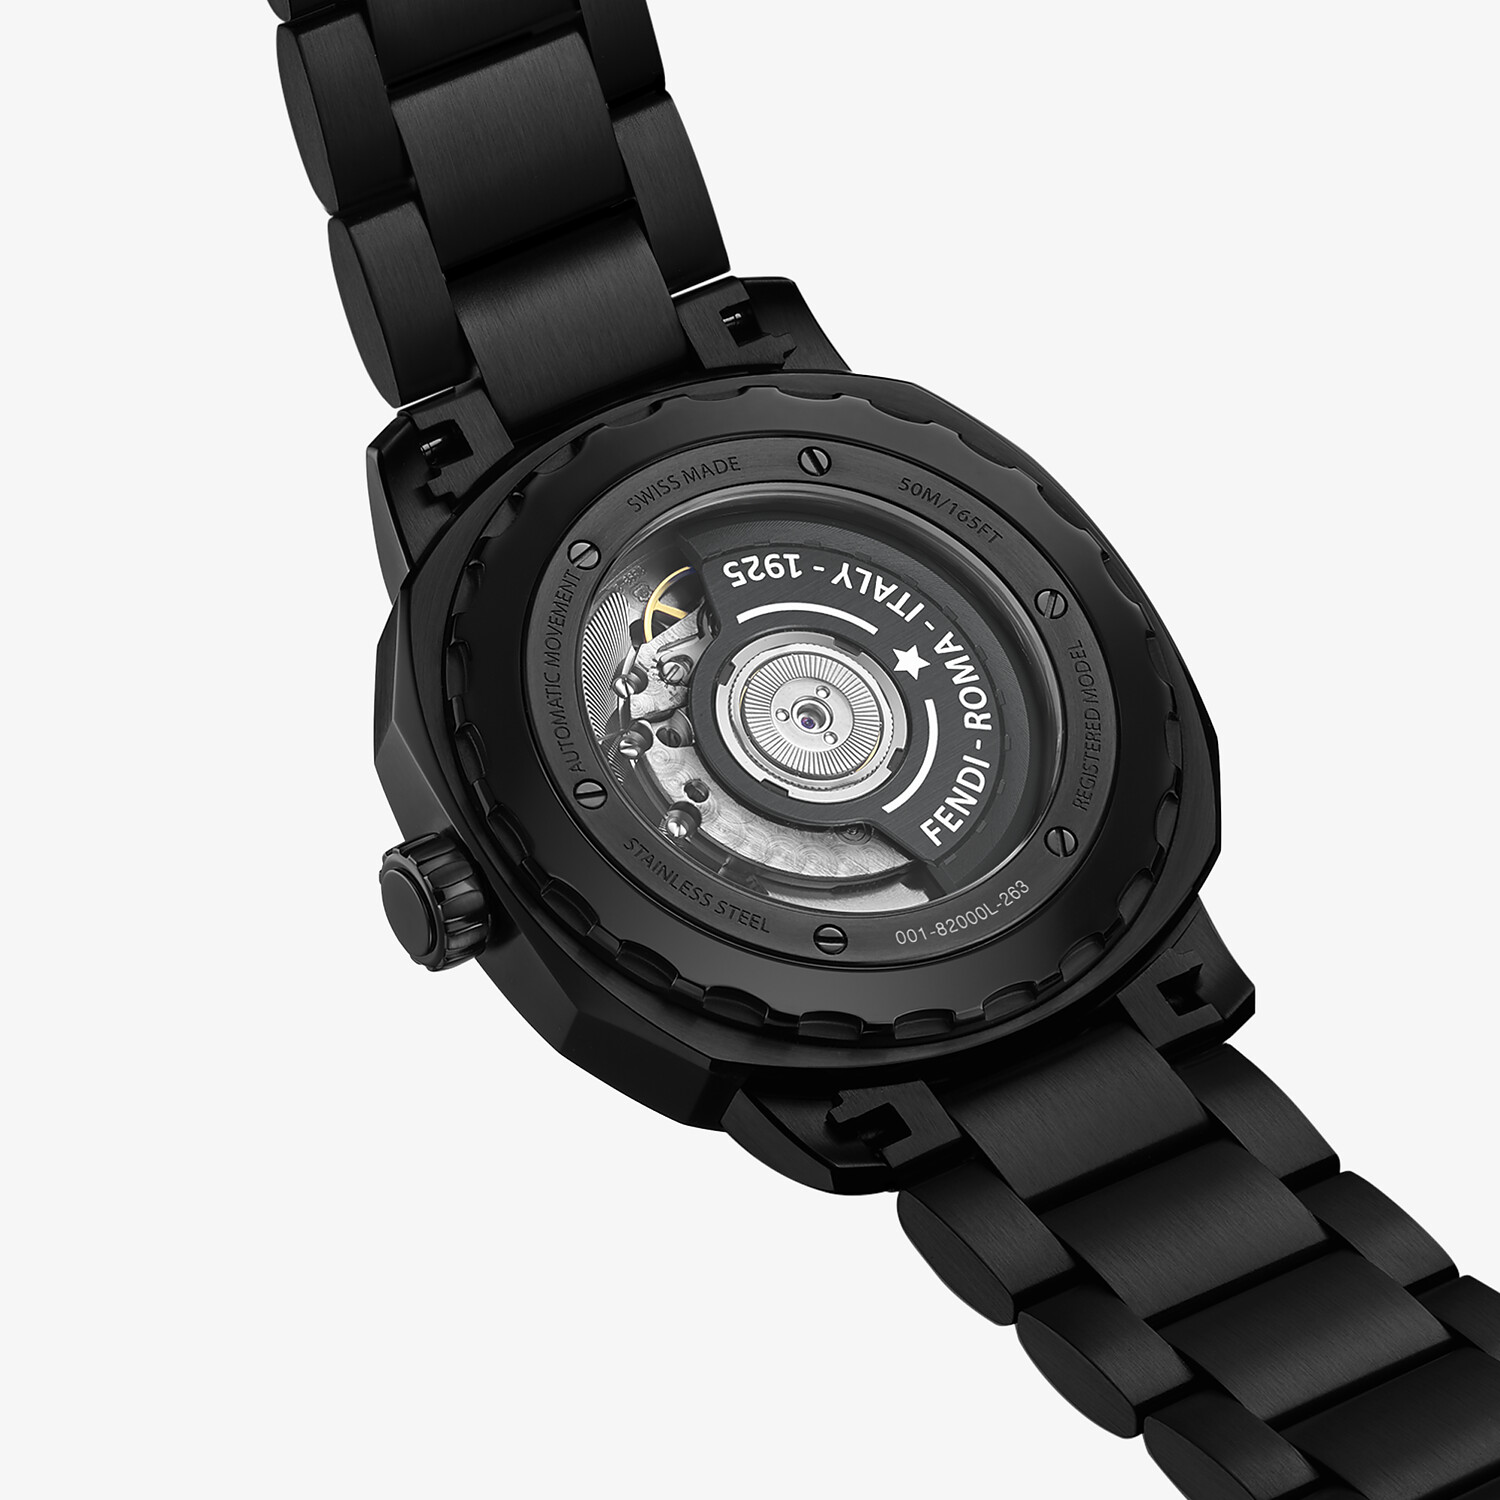 FENDI SELLERIA - 42mm (1.7inch) – Automatic watch with interchangeable bracelet - view 4 detail